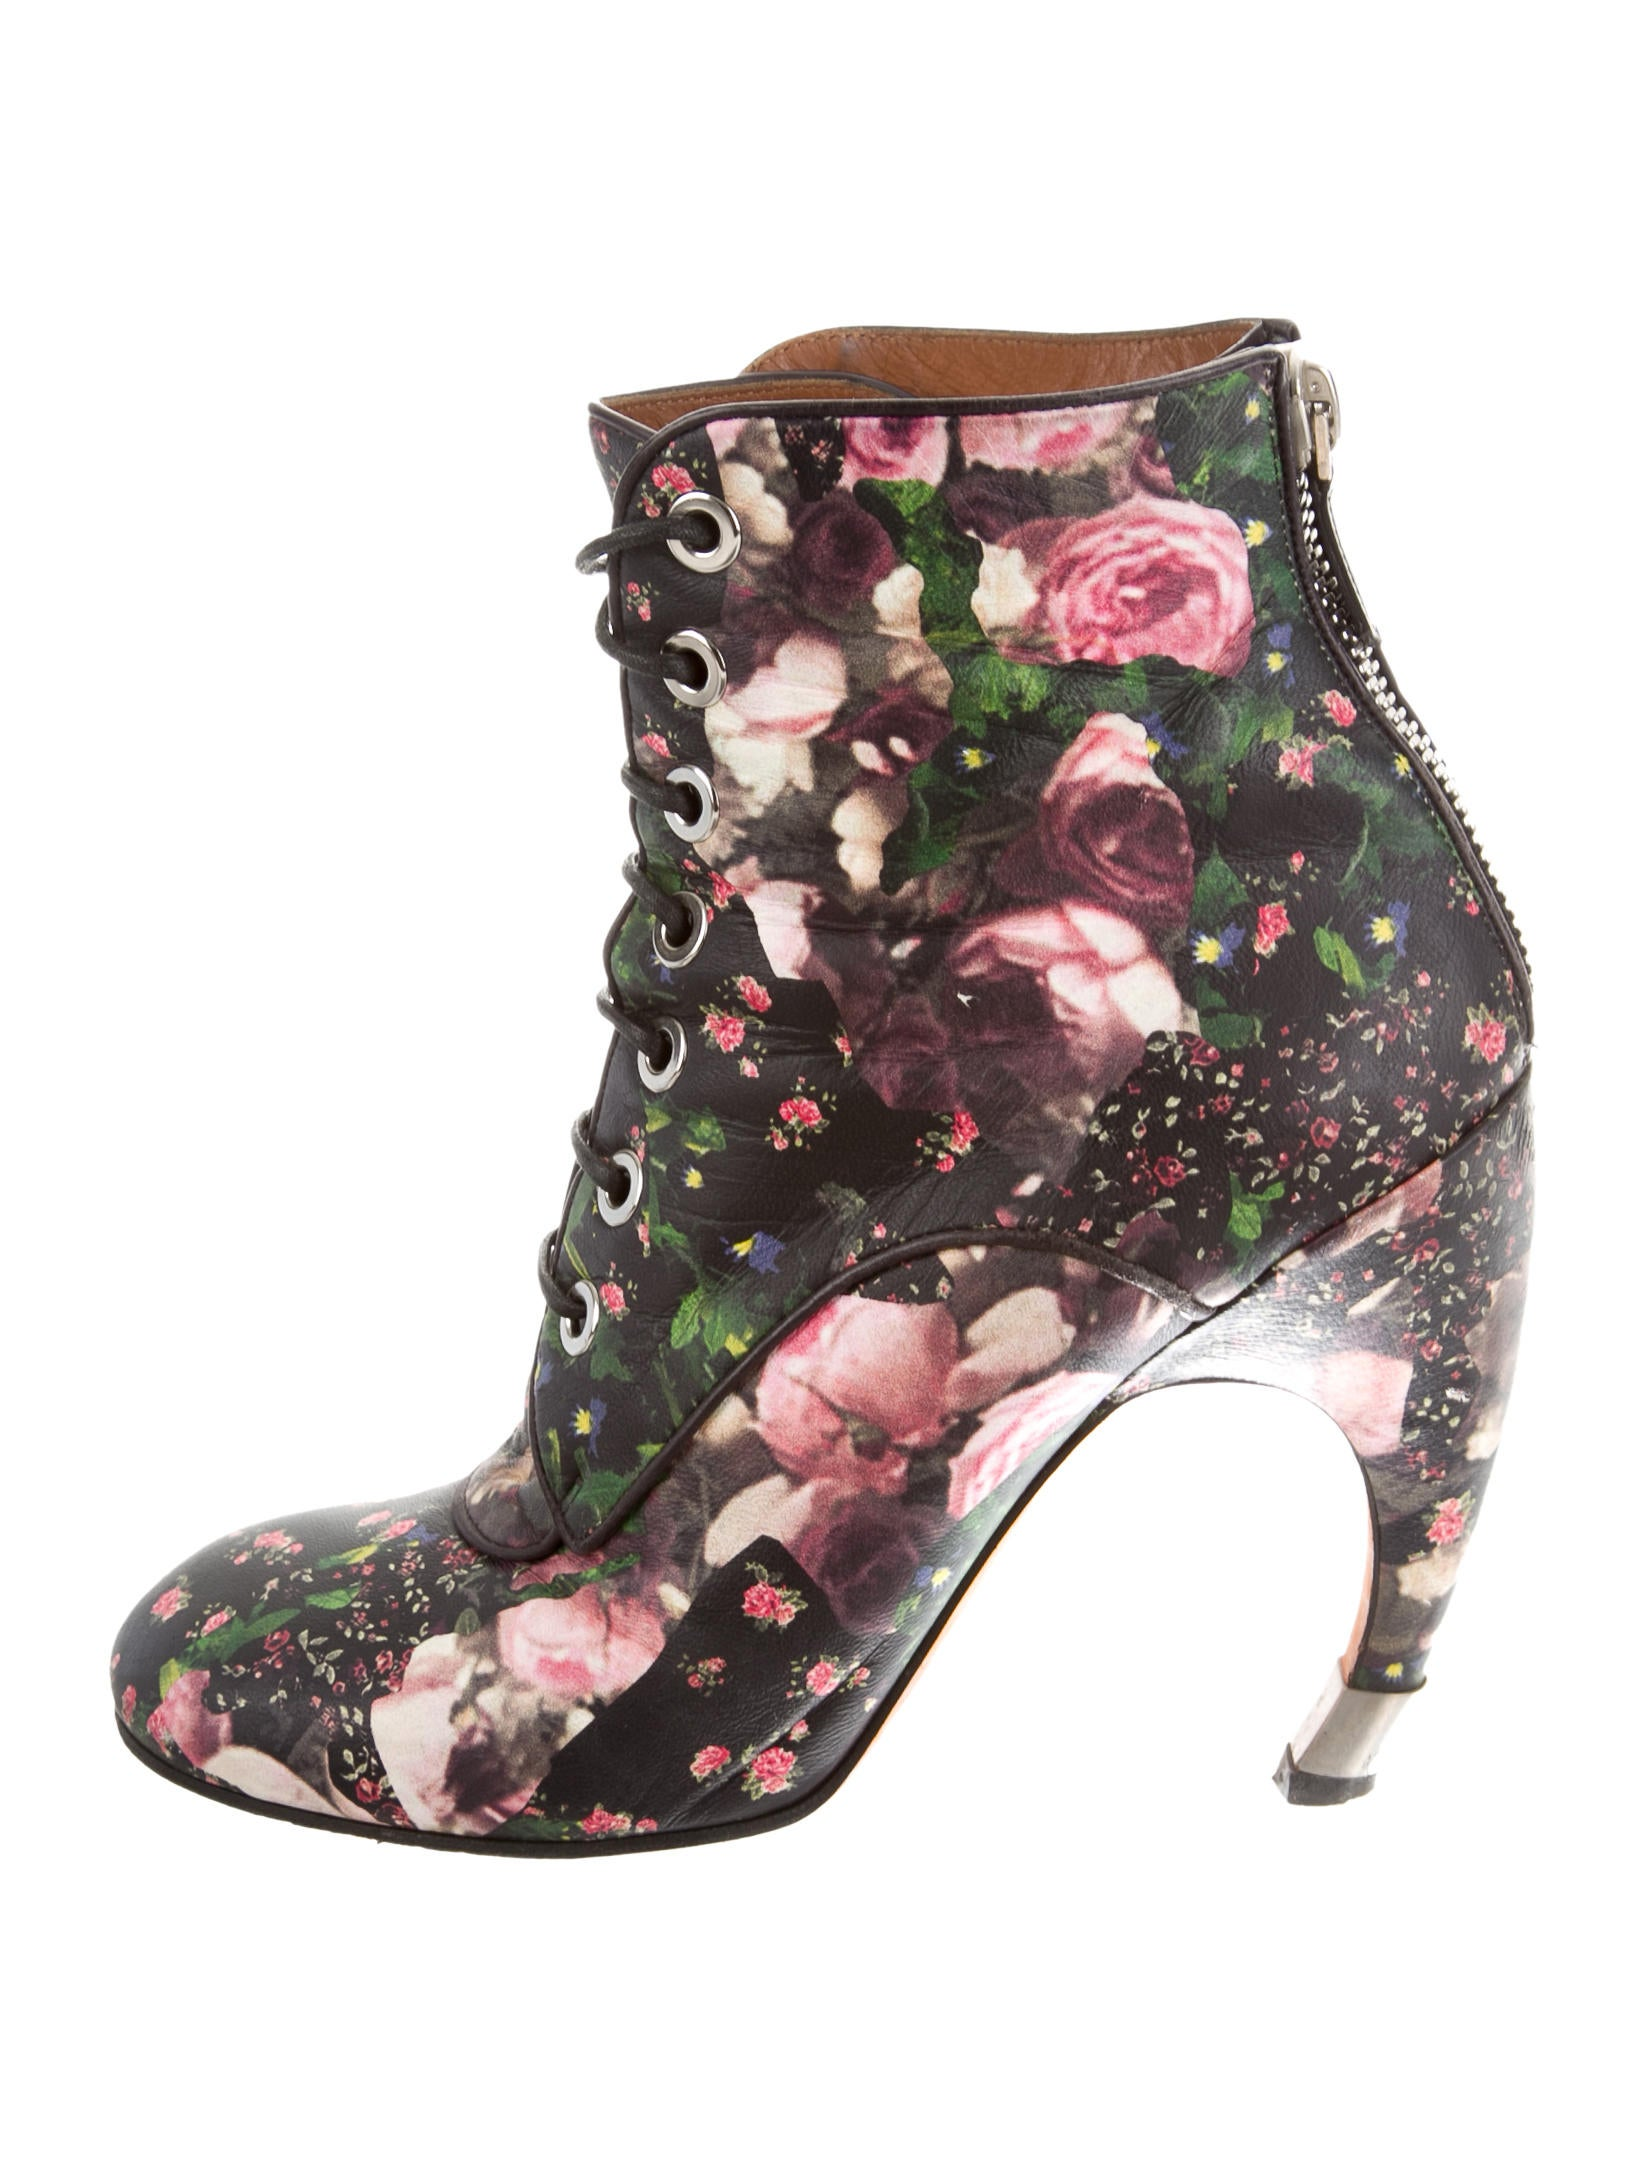 Givenchy Floral Ankle Boots low shipping sale online 99n6rCDV